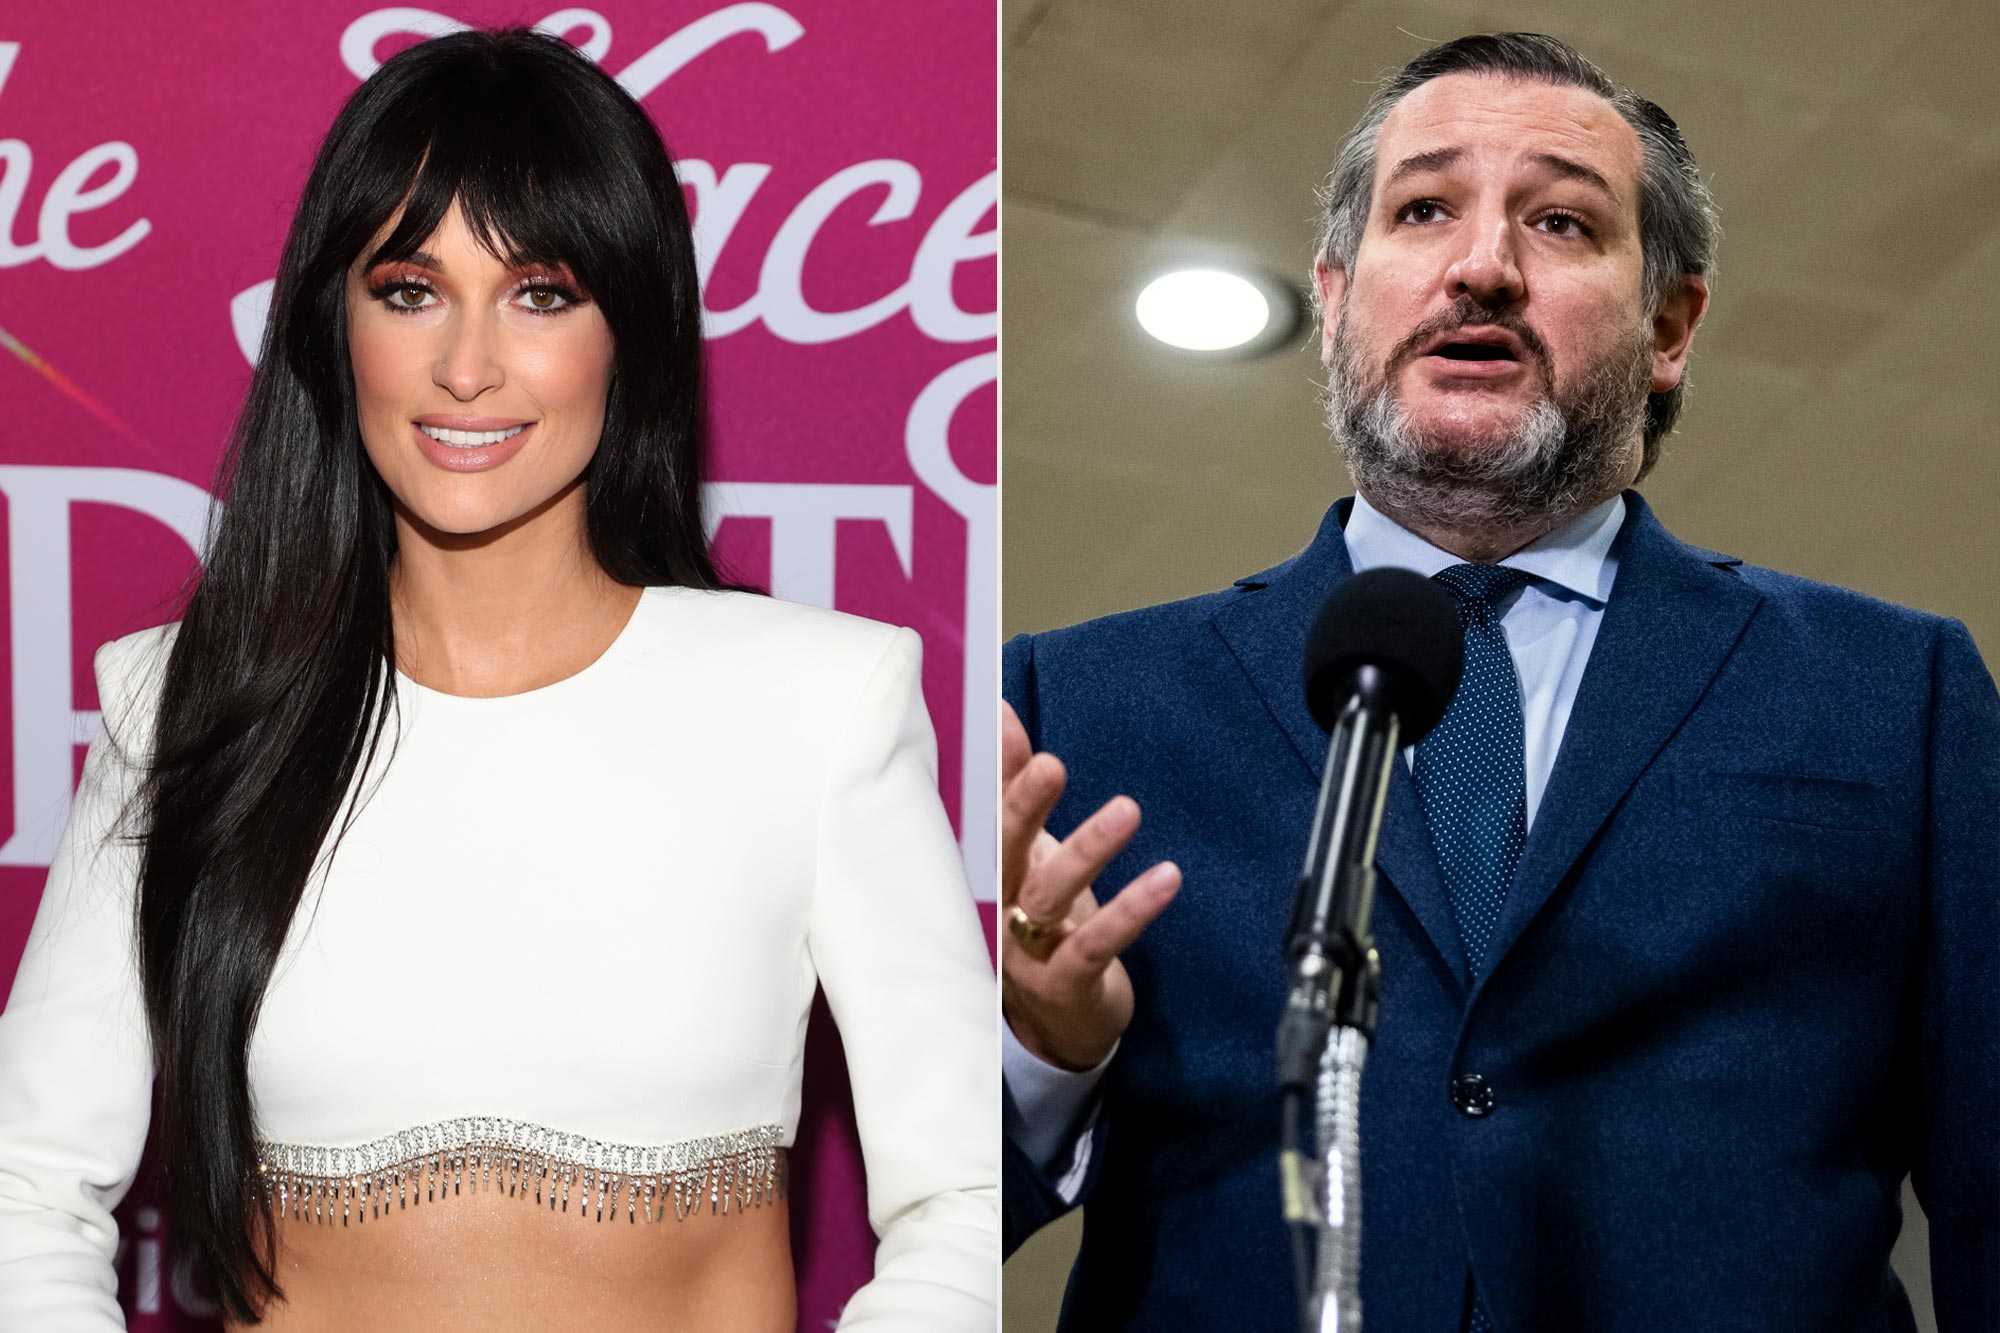 Kacey Musgraves, Ted Cruz